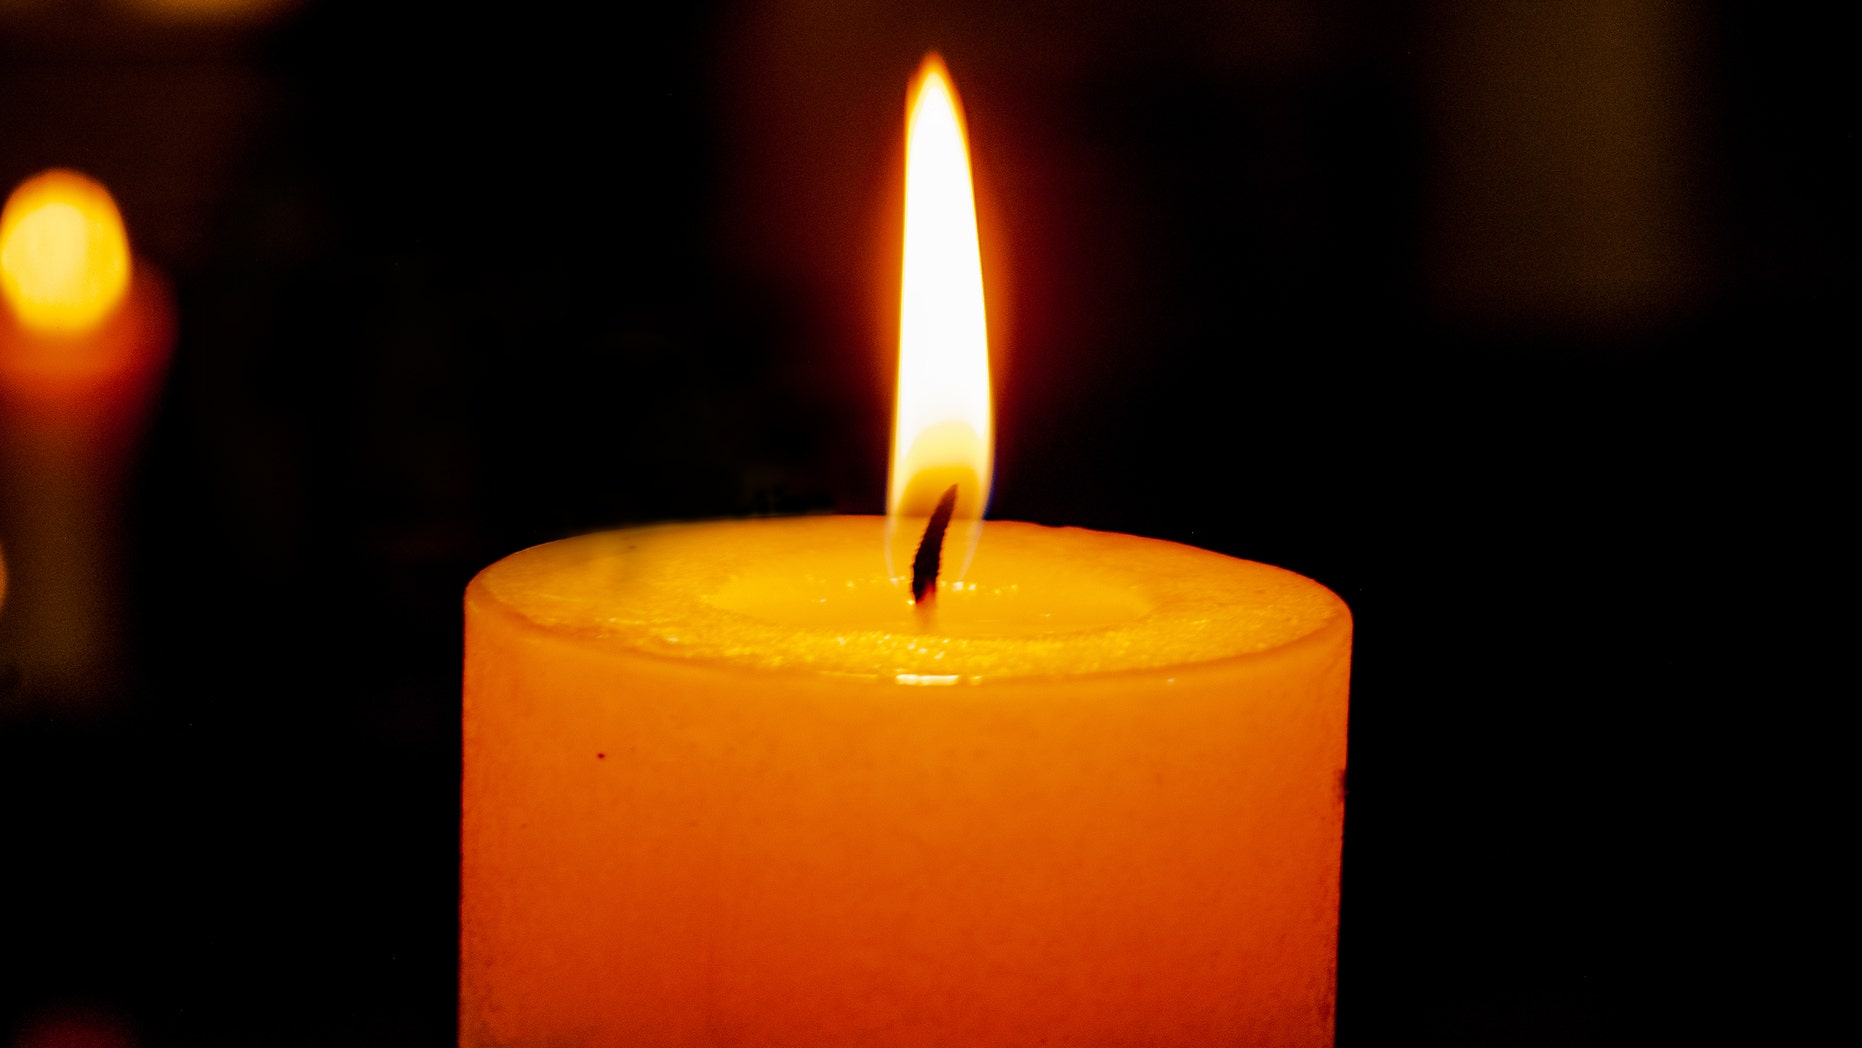 single burning candle on a dark background with reflection